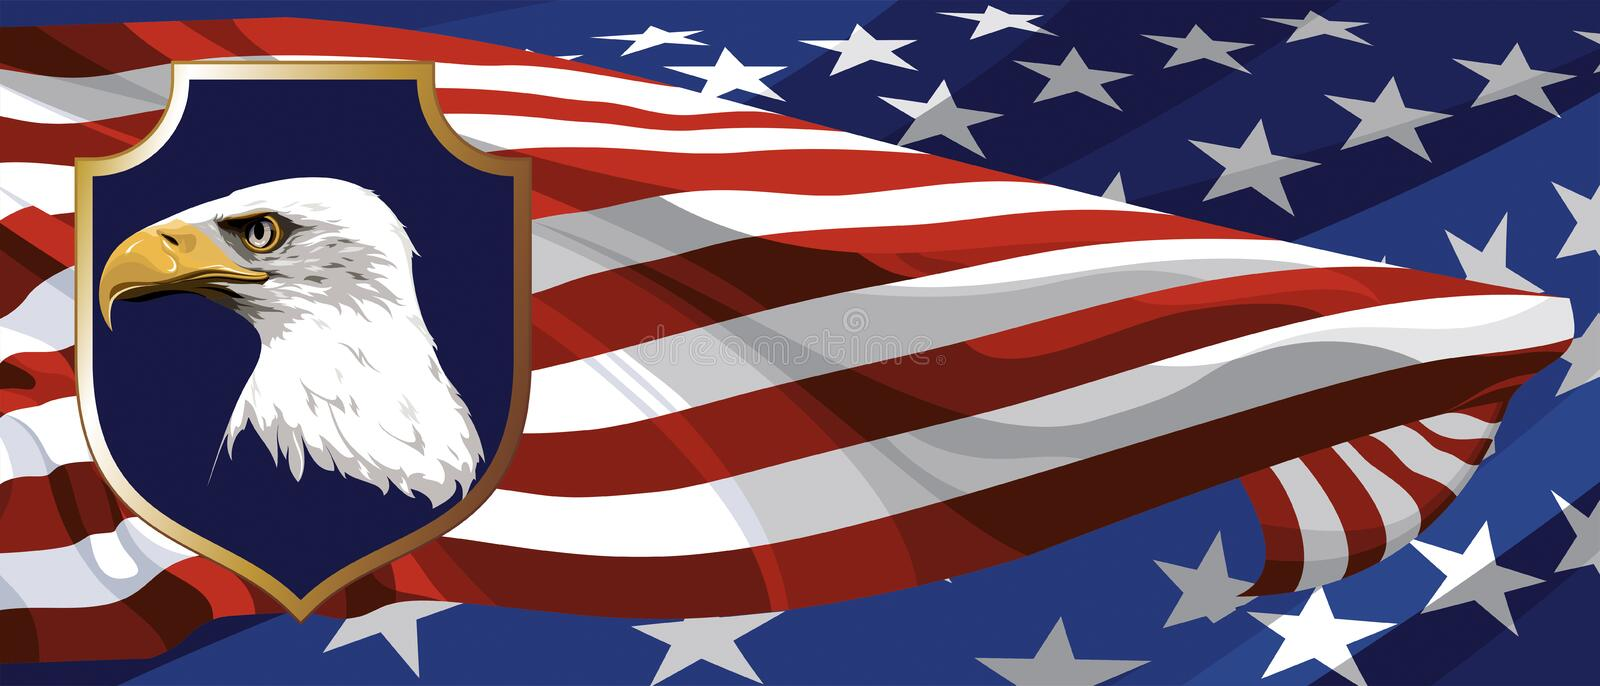 The National Symbol Of The Usa Stock Vector Illustration Of Object